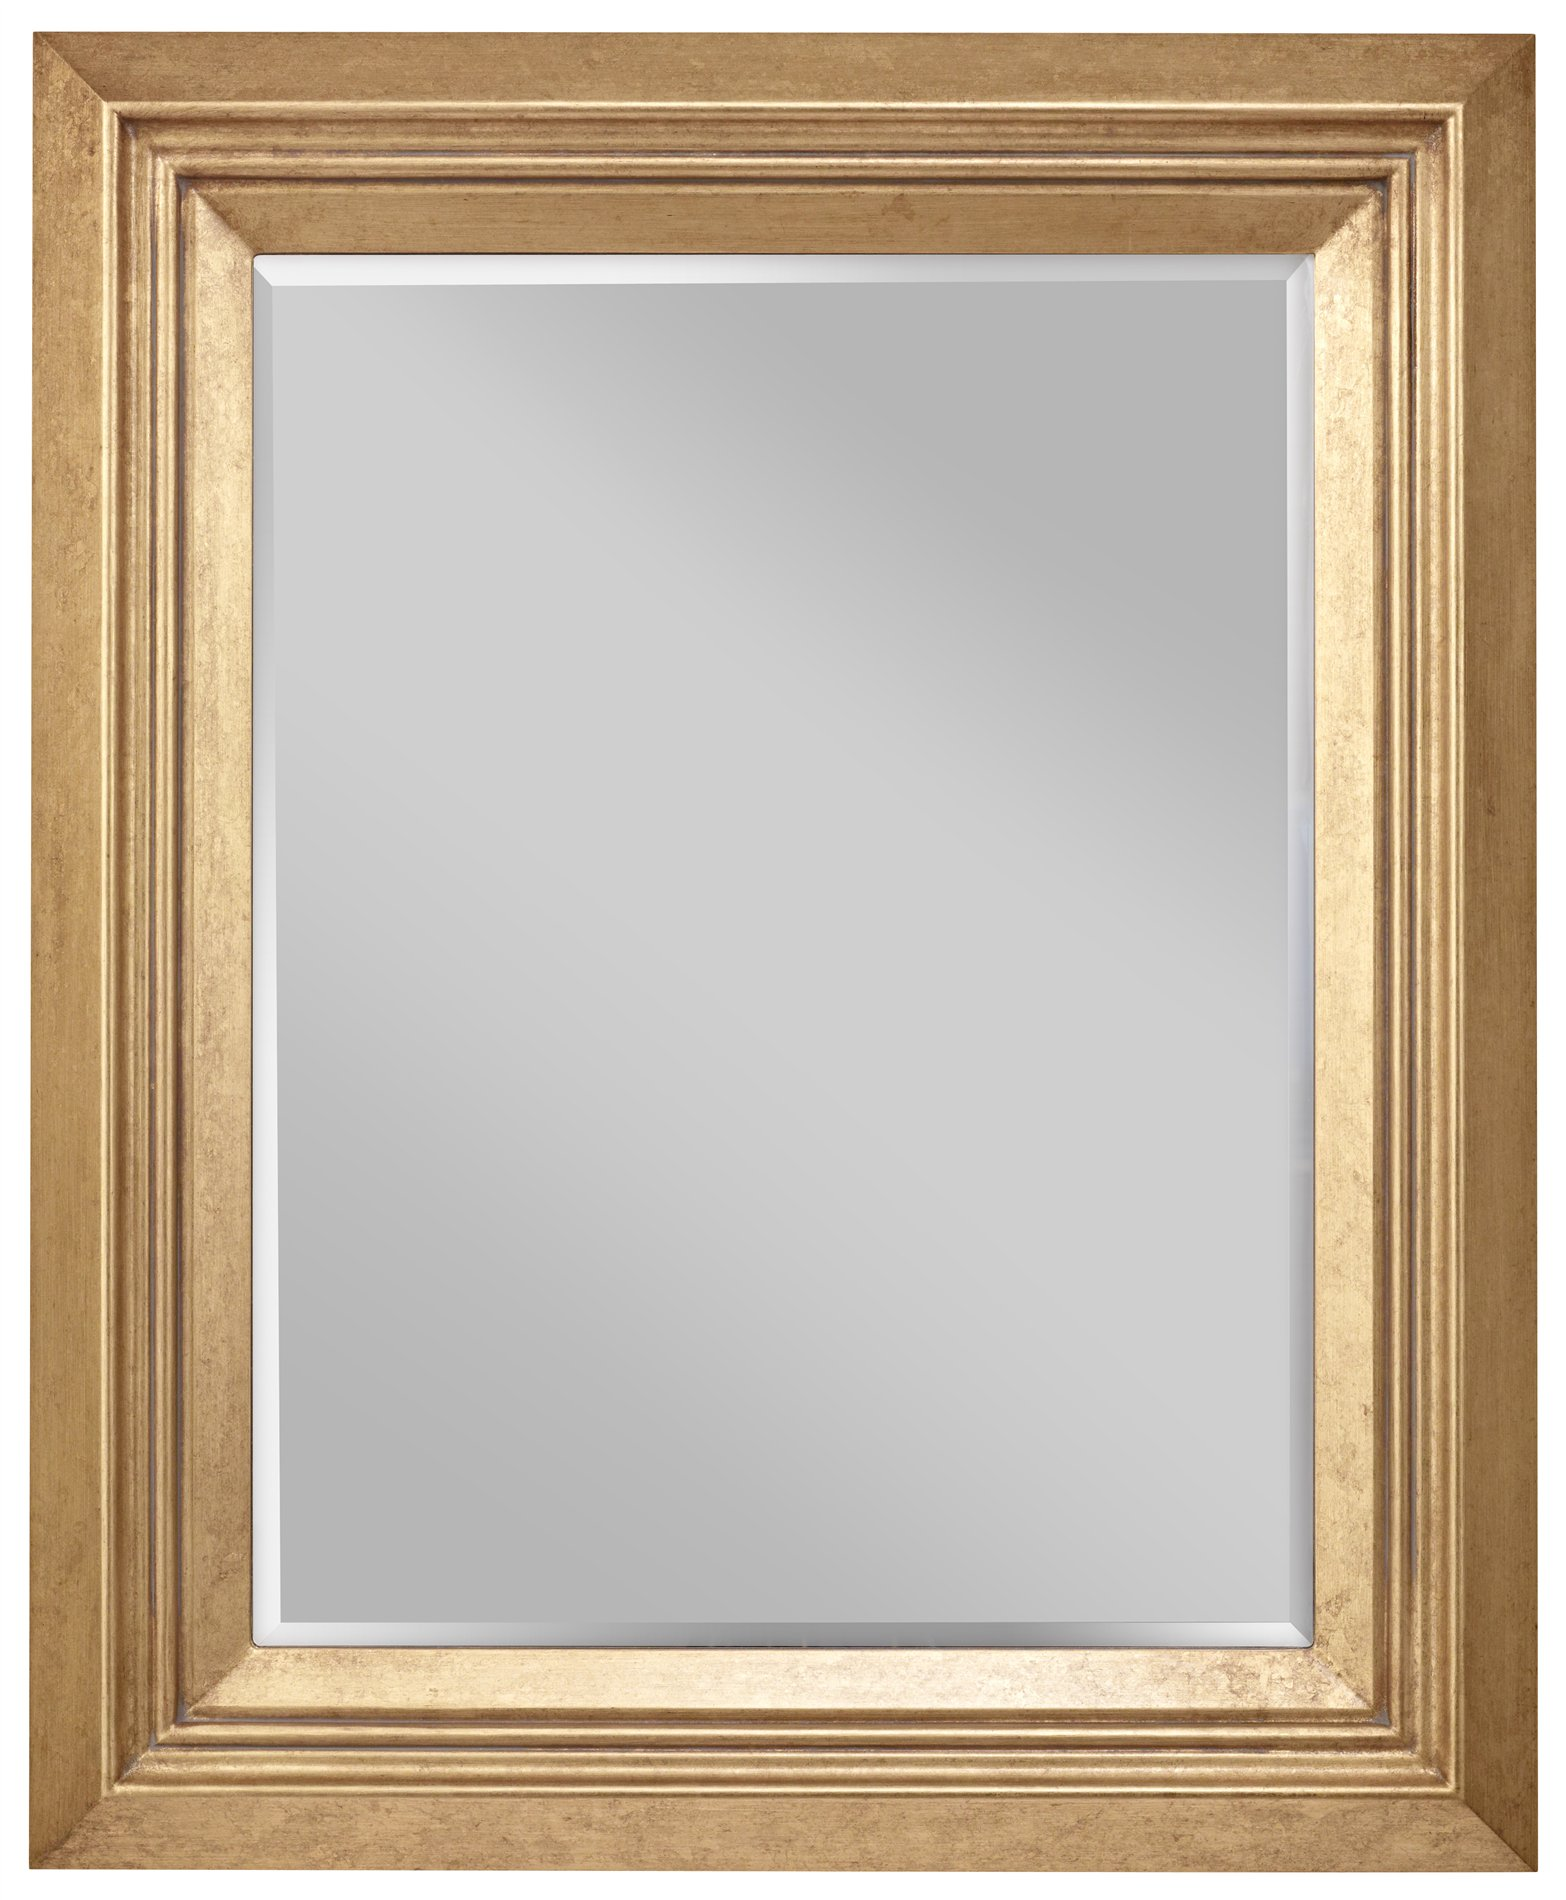 Murray Feiss Mirrors: Murray Feiss MR1167DAG Tisdale Transitional Rectangular